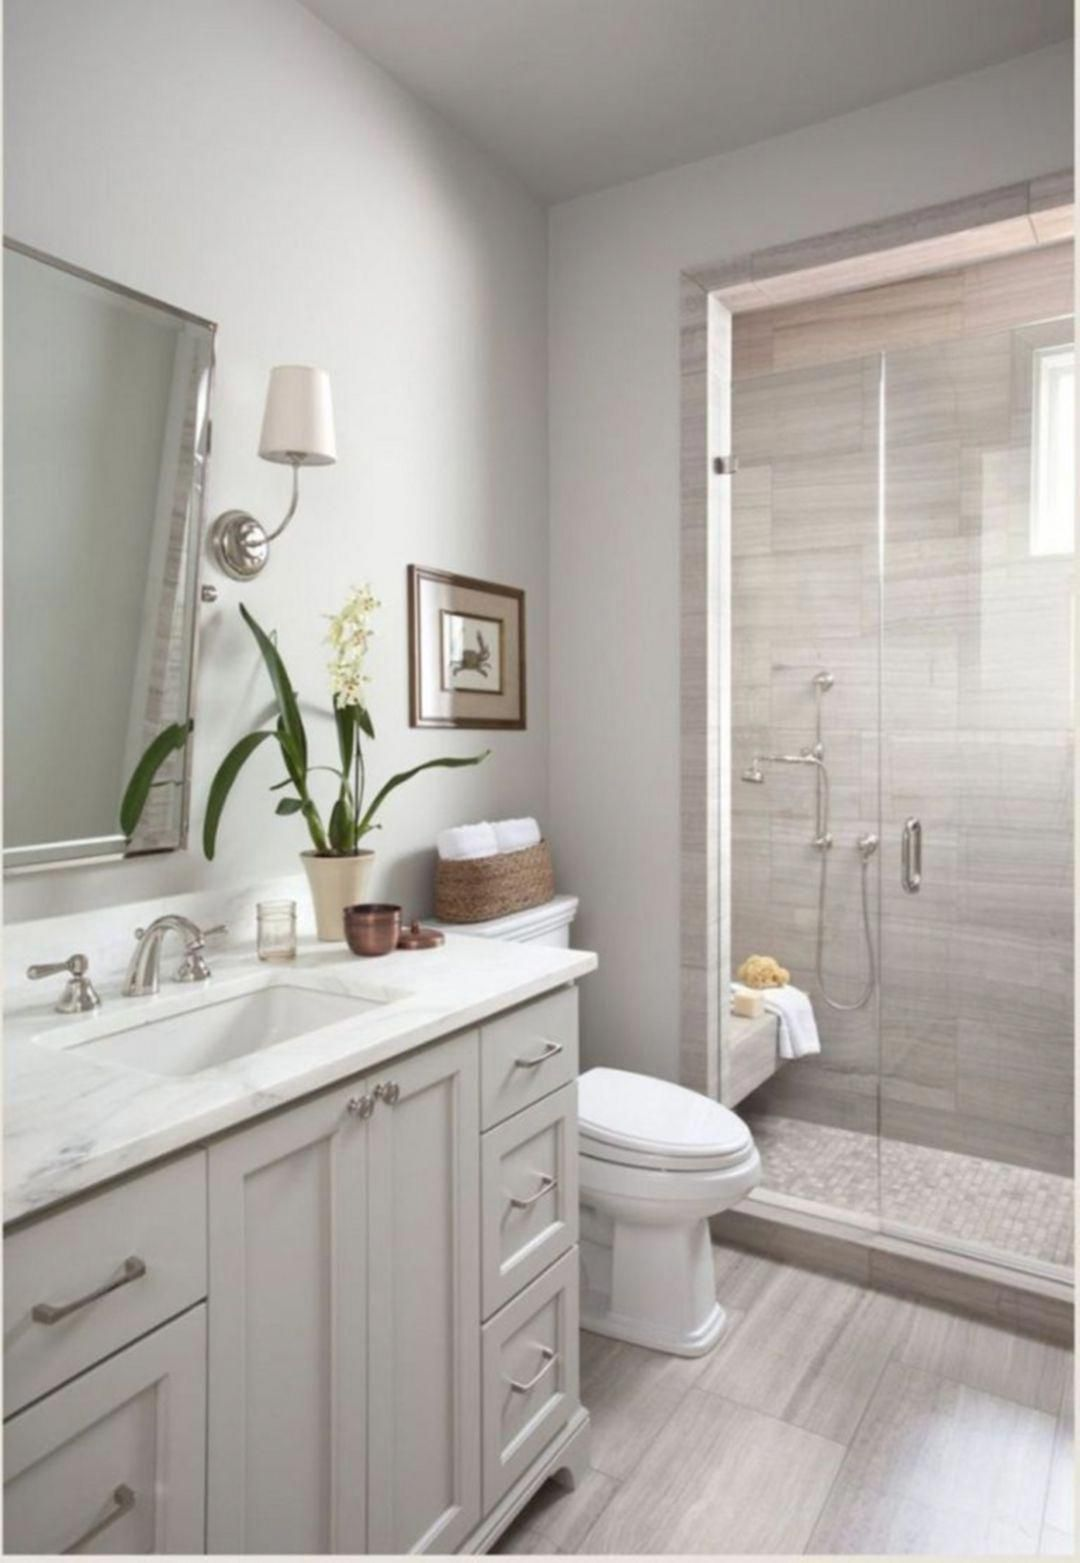 Check Below For Greige Bathroom With Images Full Bathroom